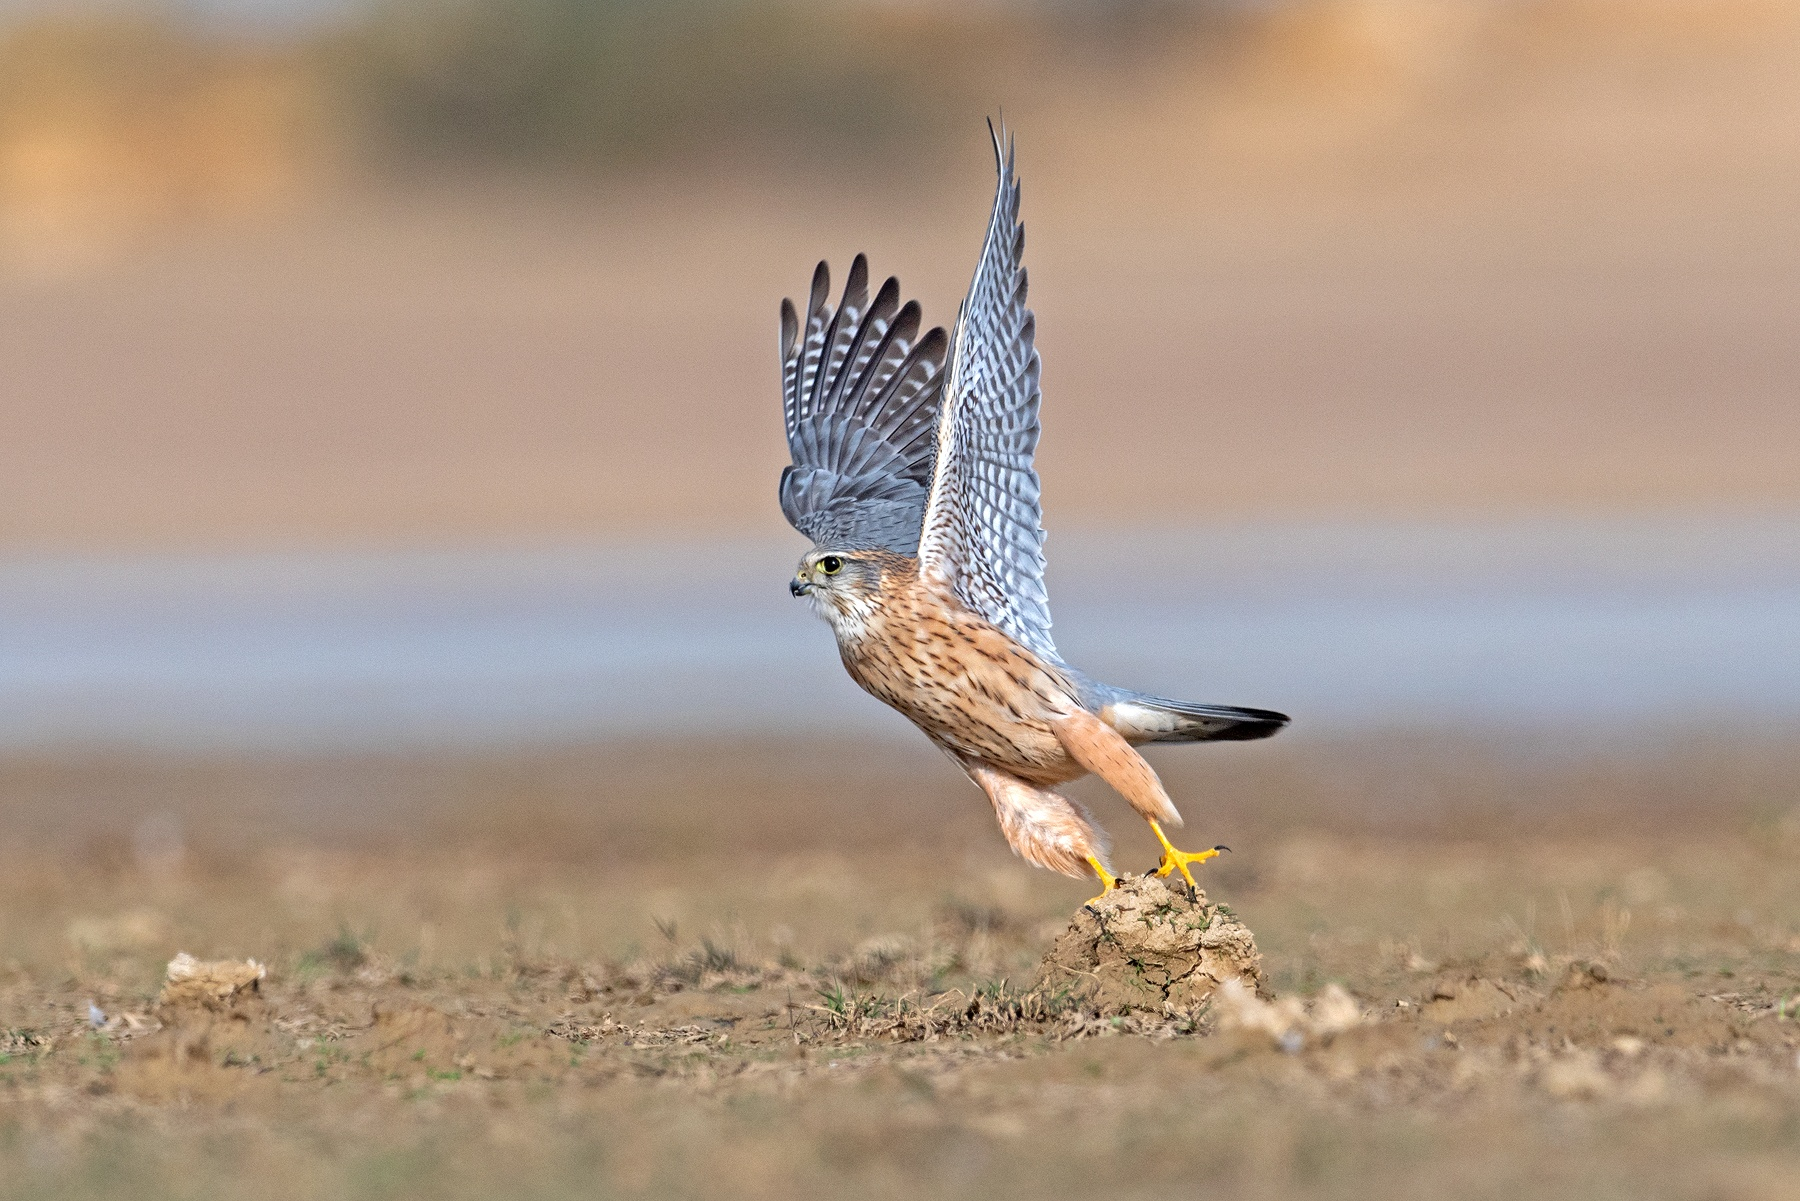 Among the park's most feisty inhabitants is the merlin (Falco columbaris) that visits the park in the winter months. Like other members of the falcon family, merlins are agile hunters that ambush prey by flying relatively low over the ground and flushing them out of bushes and short trees. Photo: Yash Kothiala